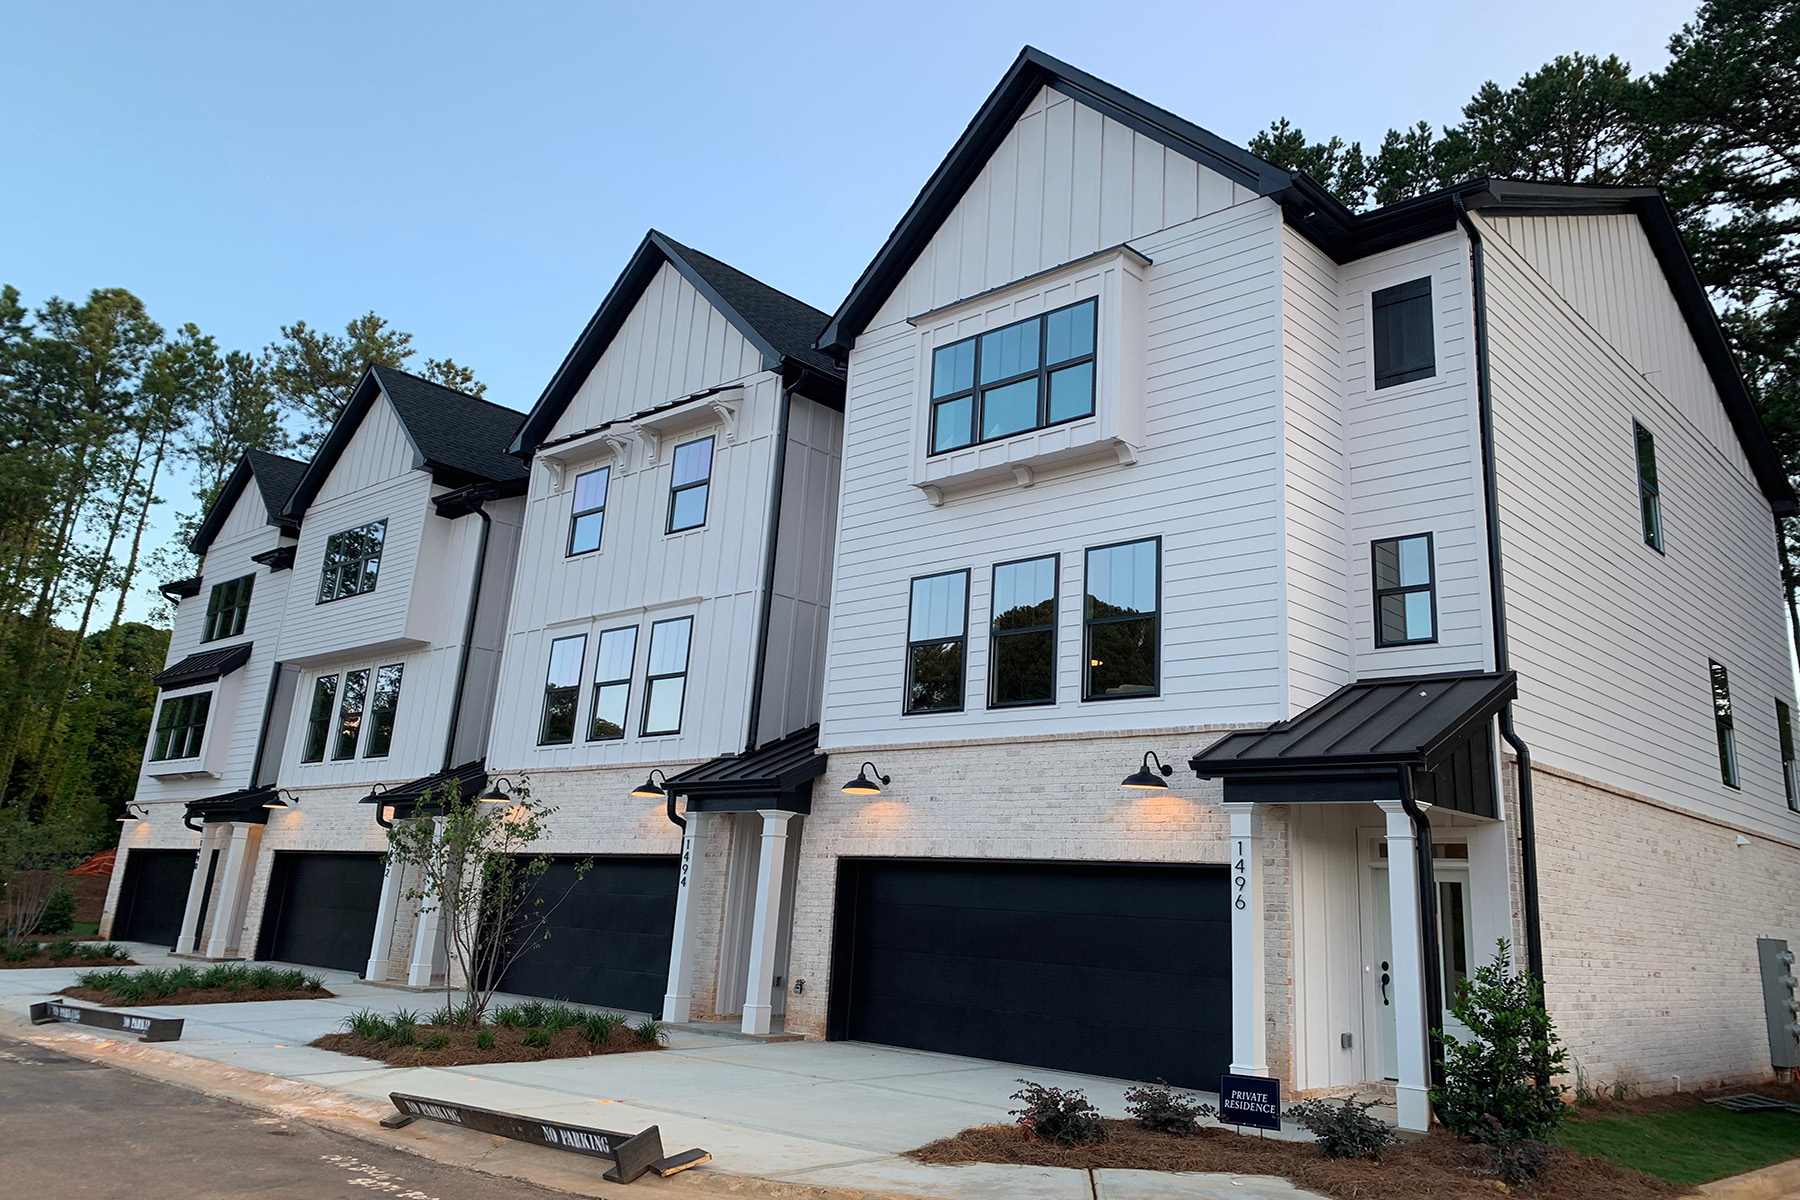 townhouses 용 매매 에 Beautiful New Townhome Located in Desirable Decatur 2729 Lawrenceville Highway No. 31, Decatur, 조지아 30033 미국